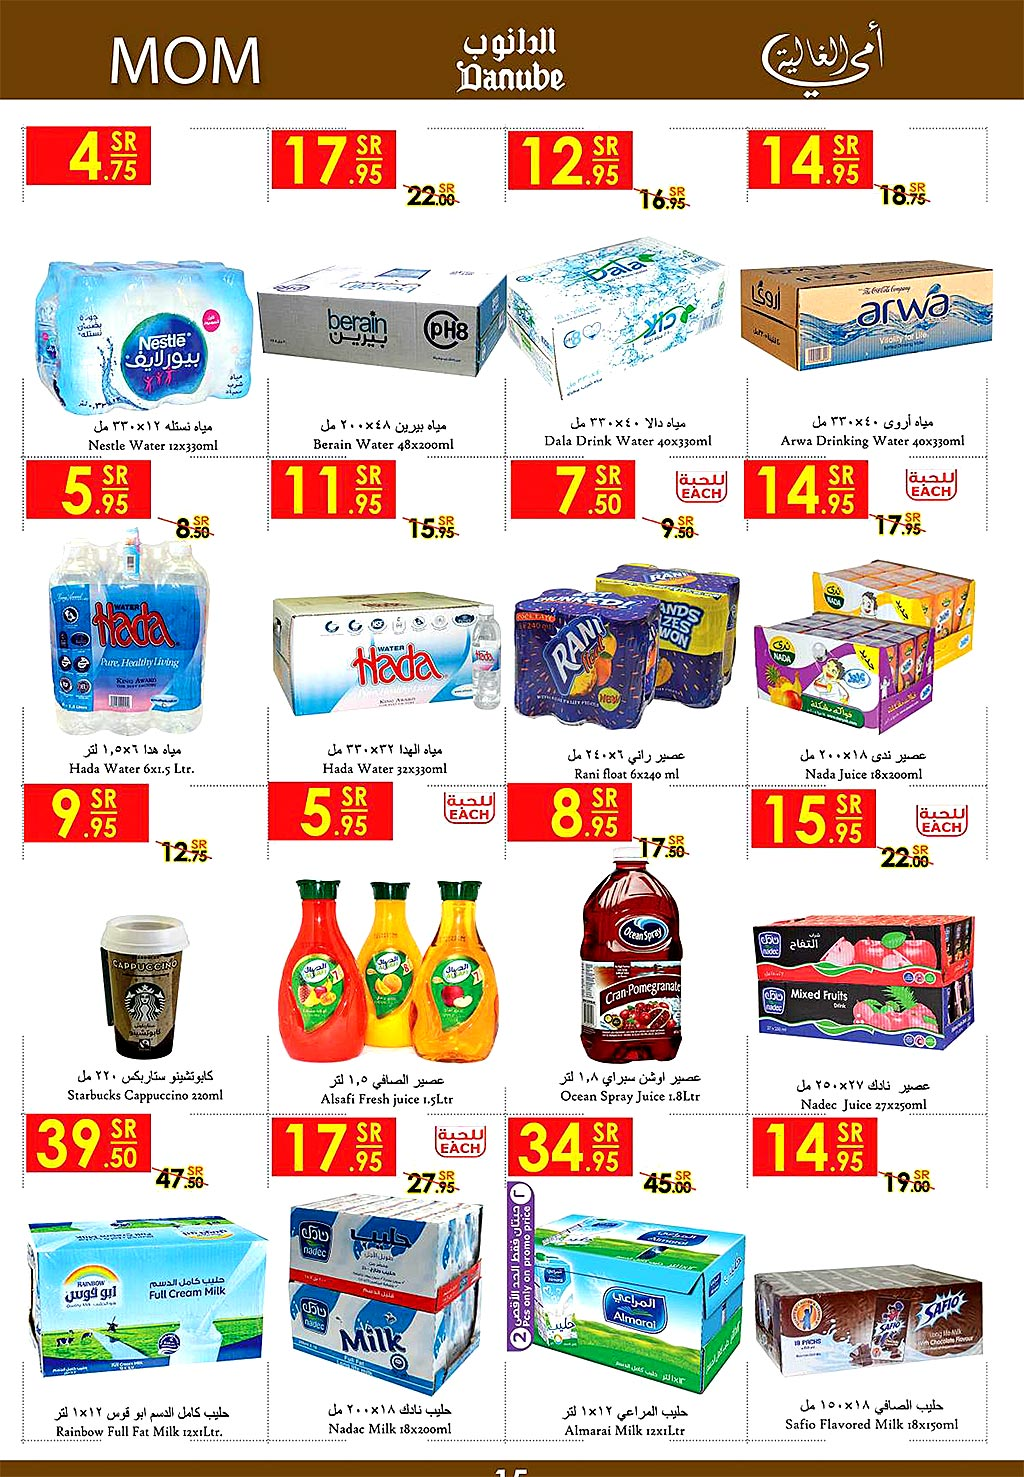 danube offers from 13mar to 20mar 2019 page number 14 عروض الدانوب من 13 مارس حتى 20 مارس 2019 صفحة رقم 14